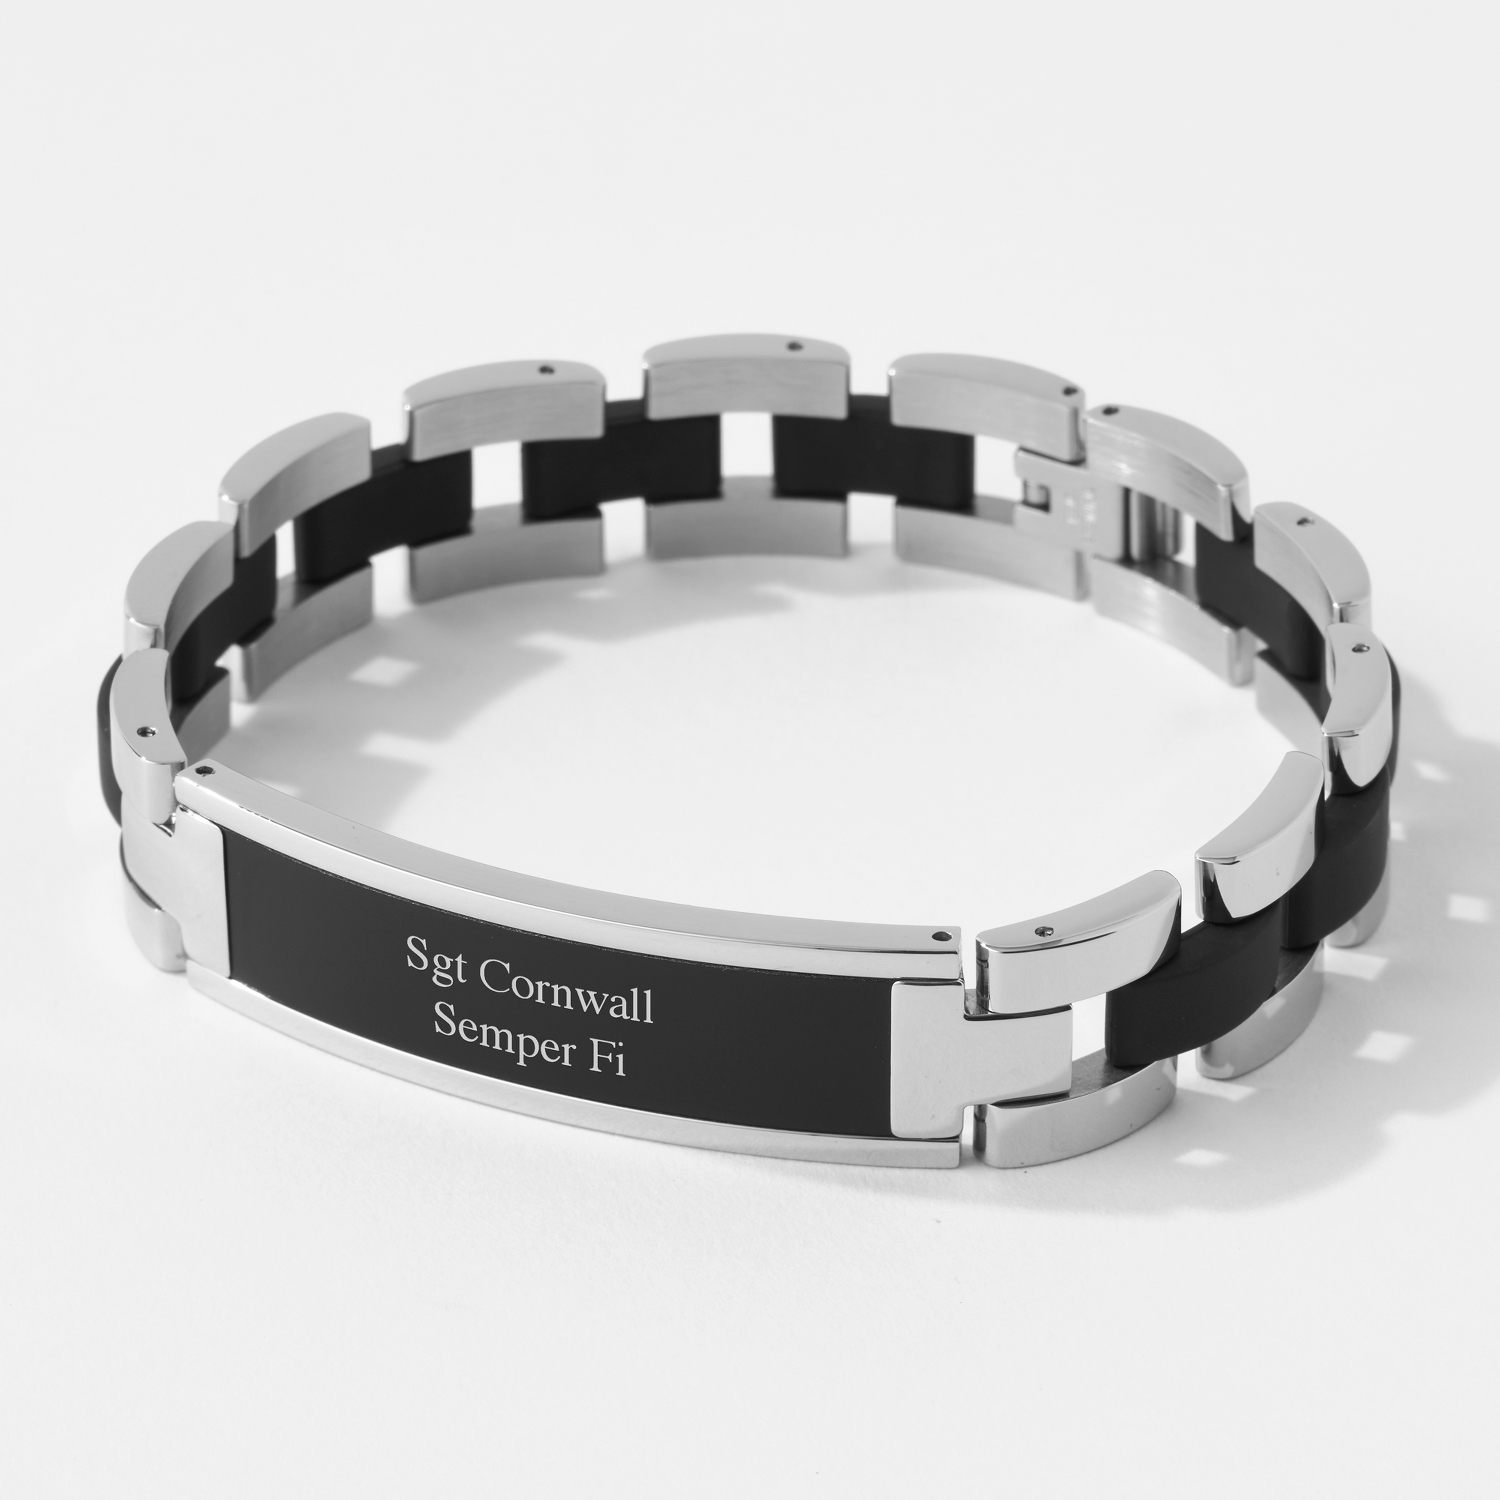 itm on loading coumadin adult medical is alert chain image curb information bracelet a engraved id pre myiddr